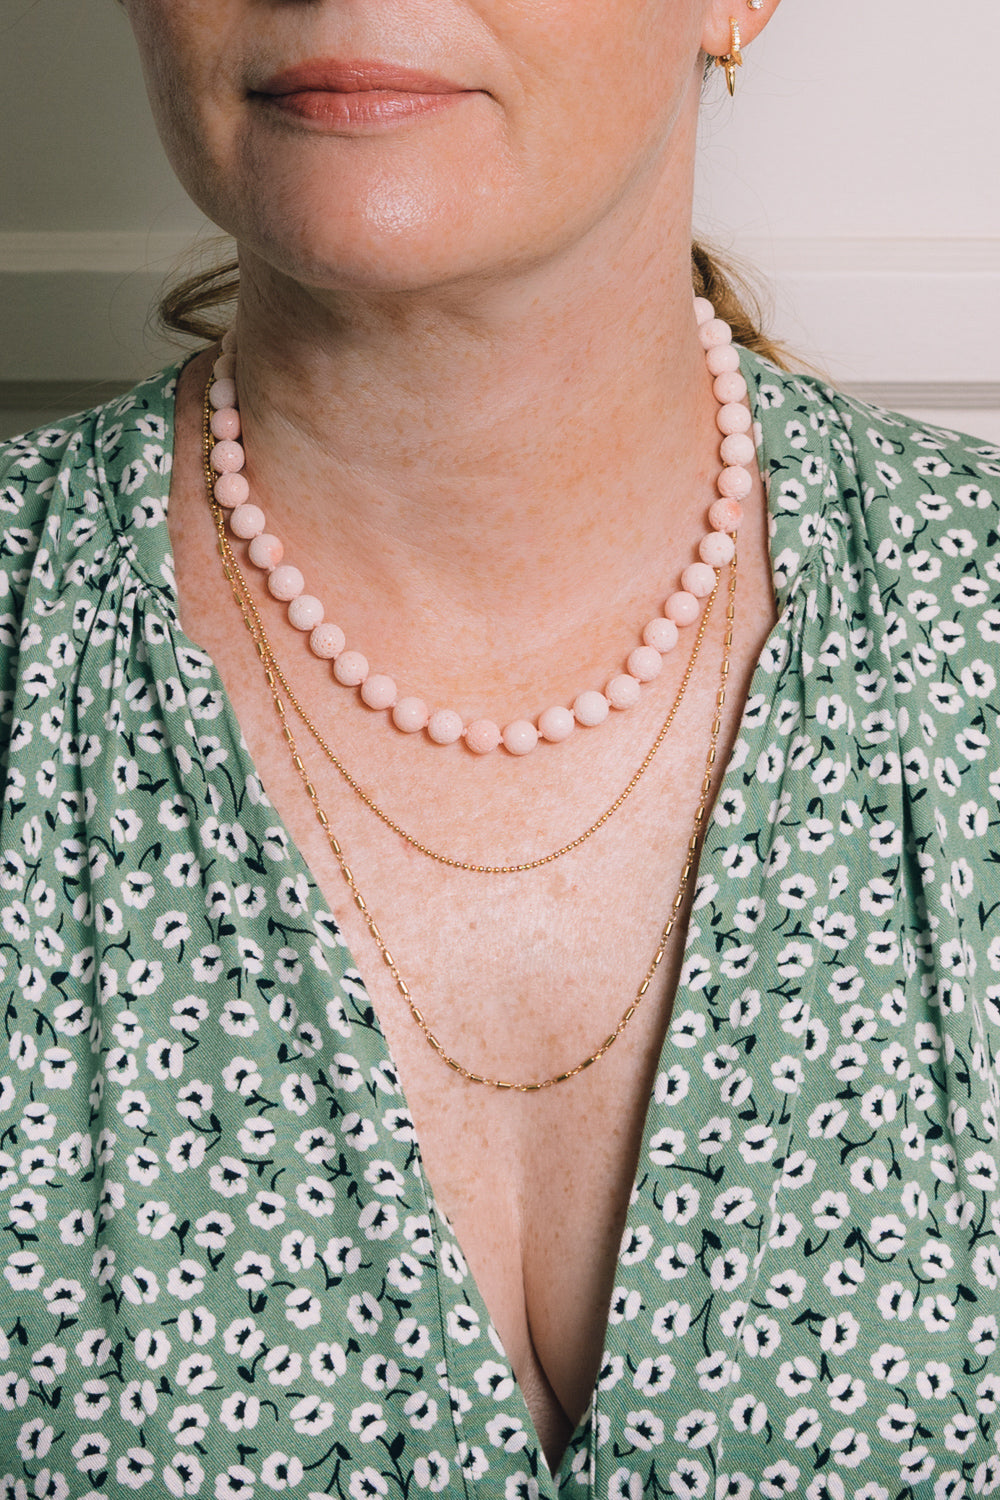 salmon sponge coral beaded necklace with layering necklaces on model